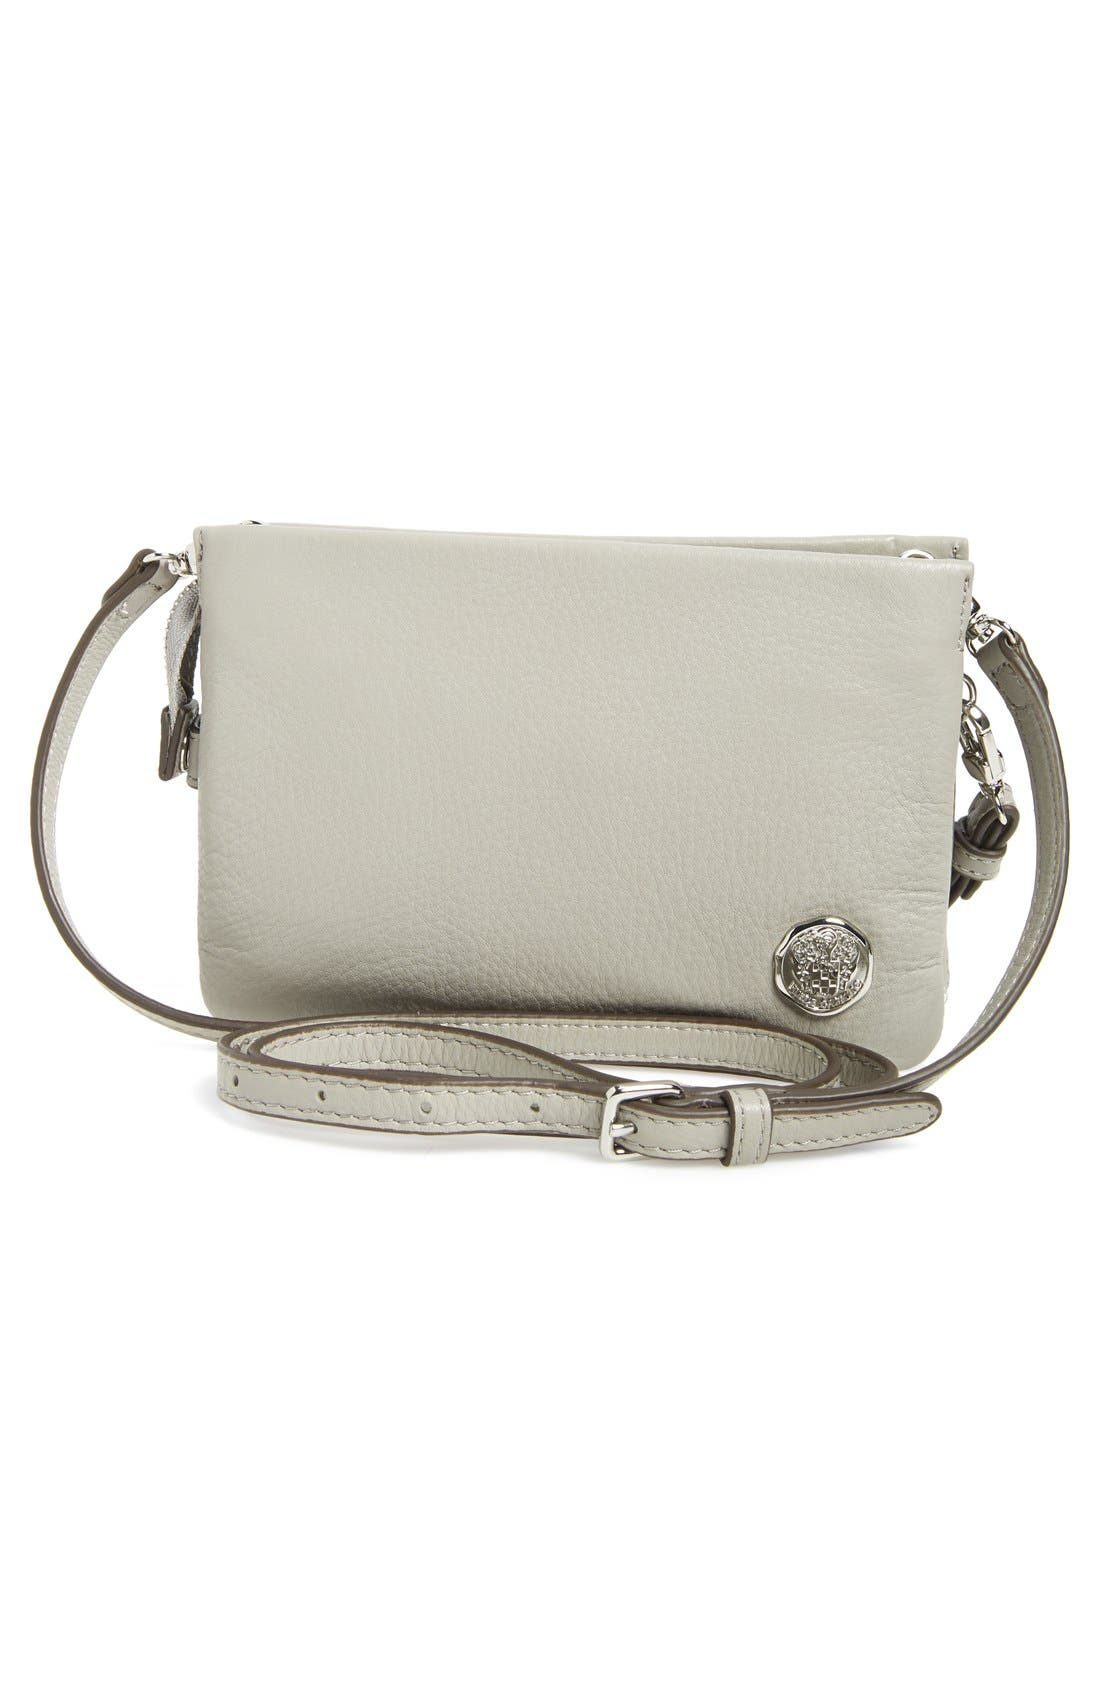 'Cami' Leather Crossbody Bag,                             Alternate thumbnail 75, color,